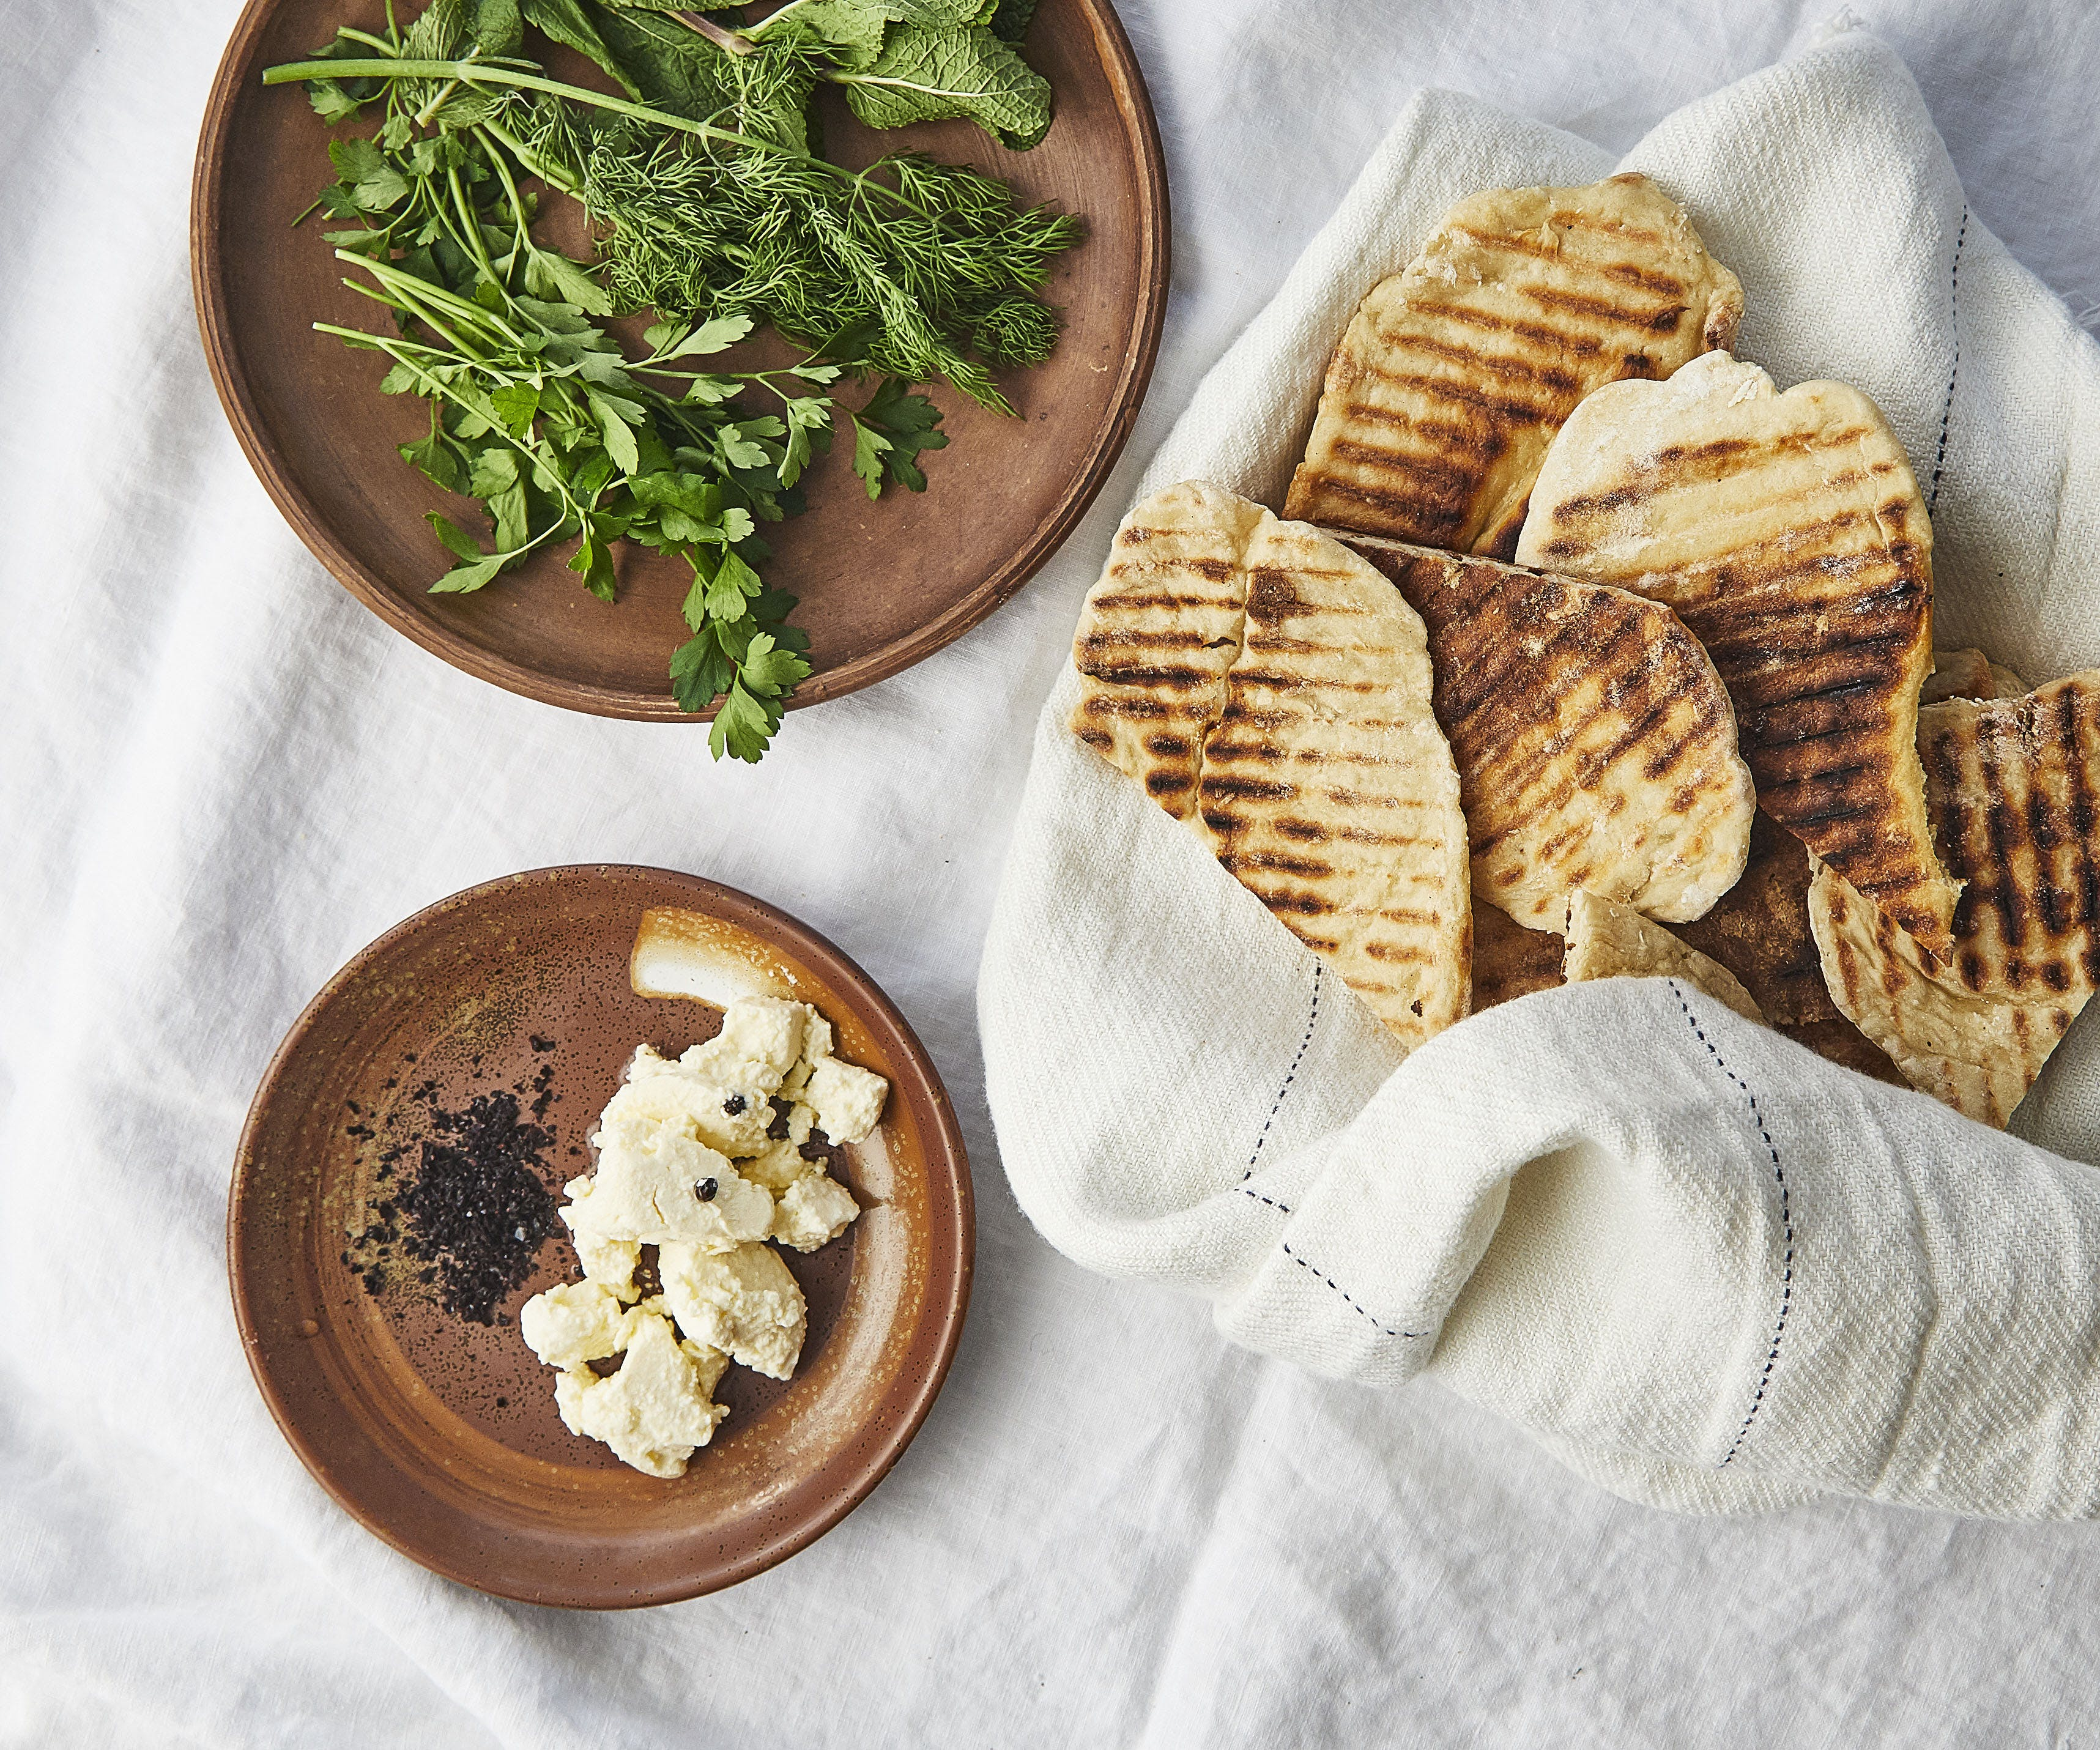 Homemade Flatbreads with Soft Cheese, Herbs and Pul Biber